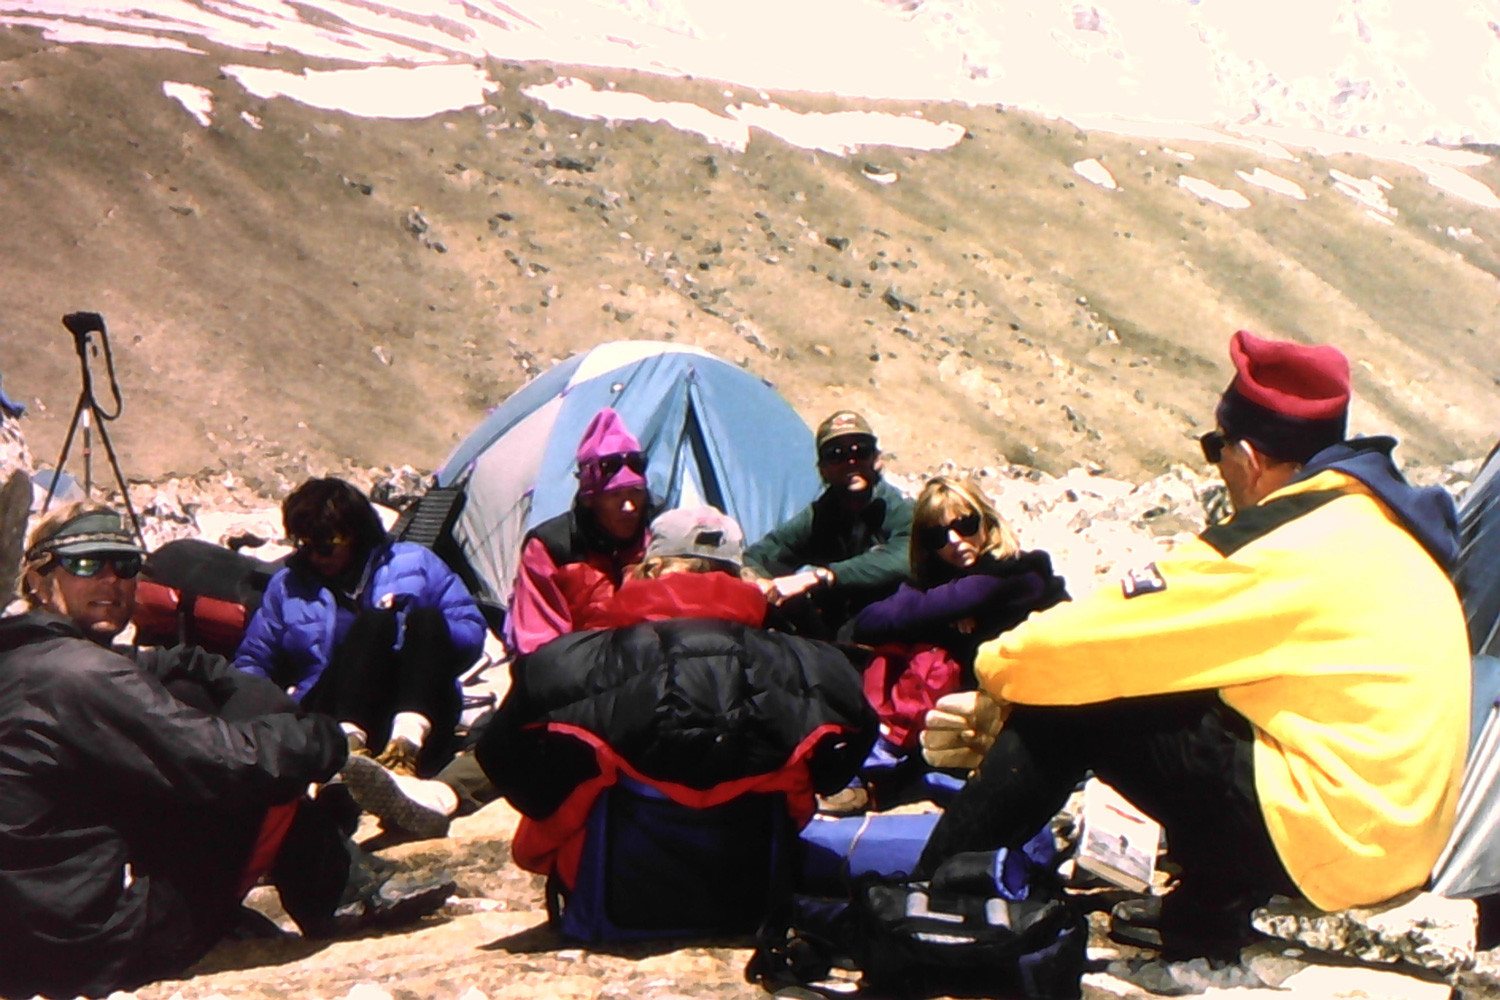 Scott Fischer, Sandy Hill Pitman, Anatoli Boukreev and other climbers on Everest trek.